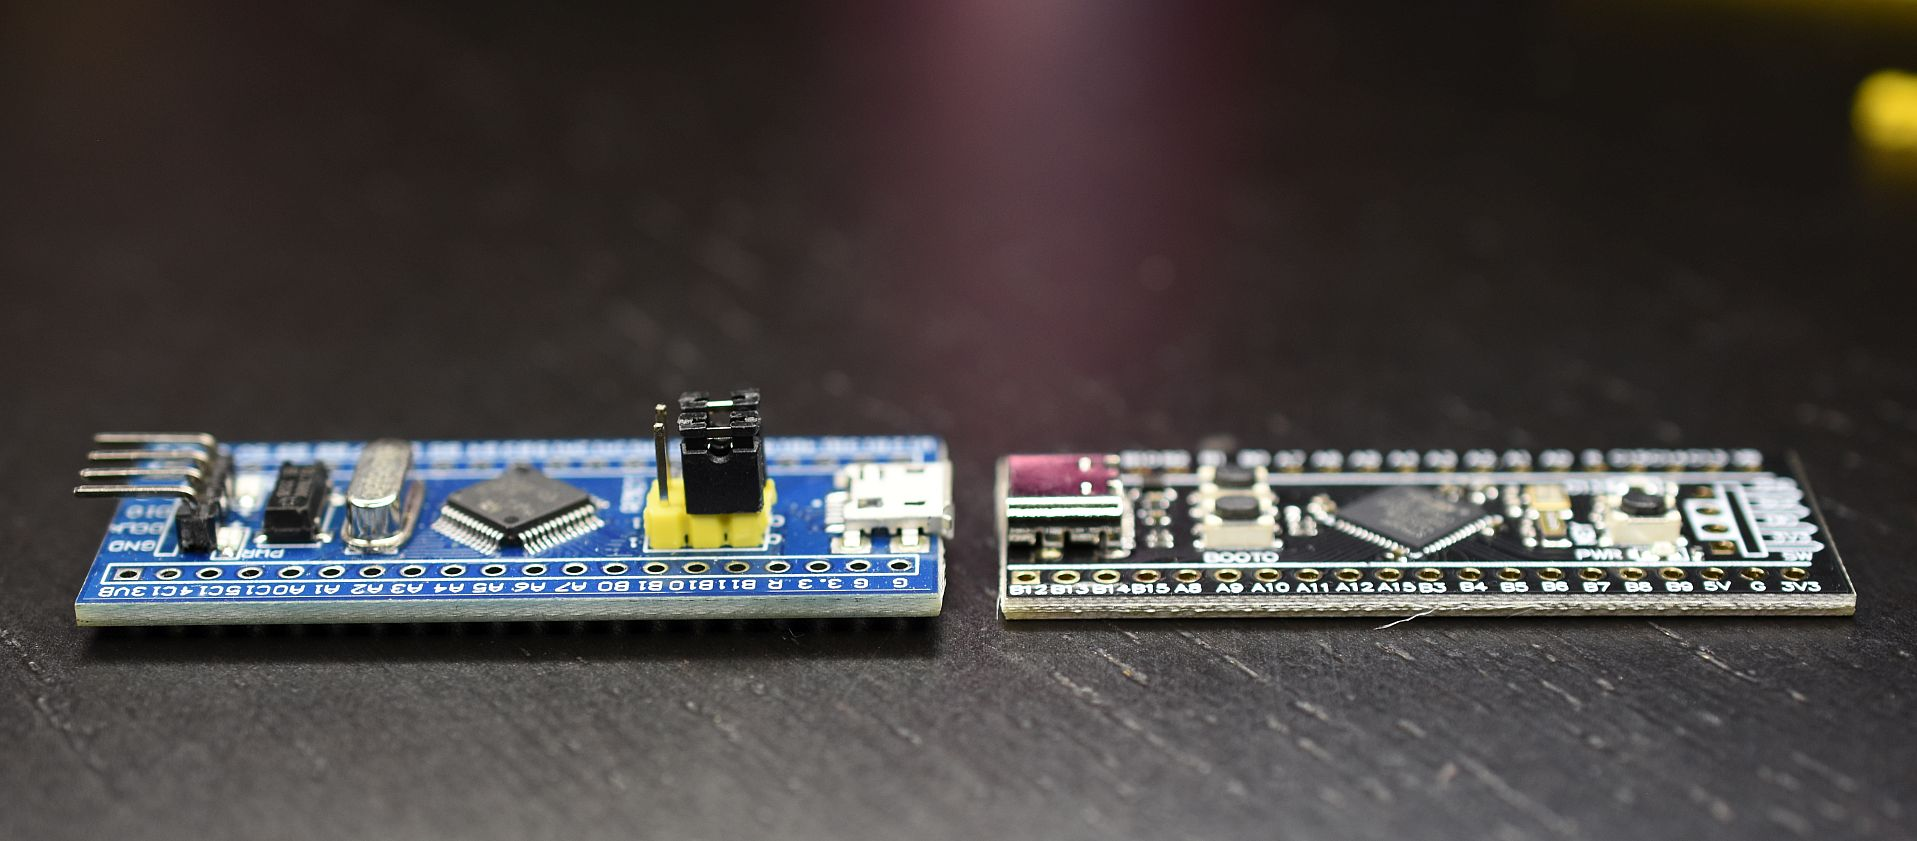 Blue Pill Vs Black Pill: Transitioning From STM32F103 To STM32F411